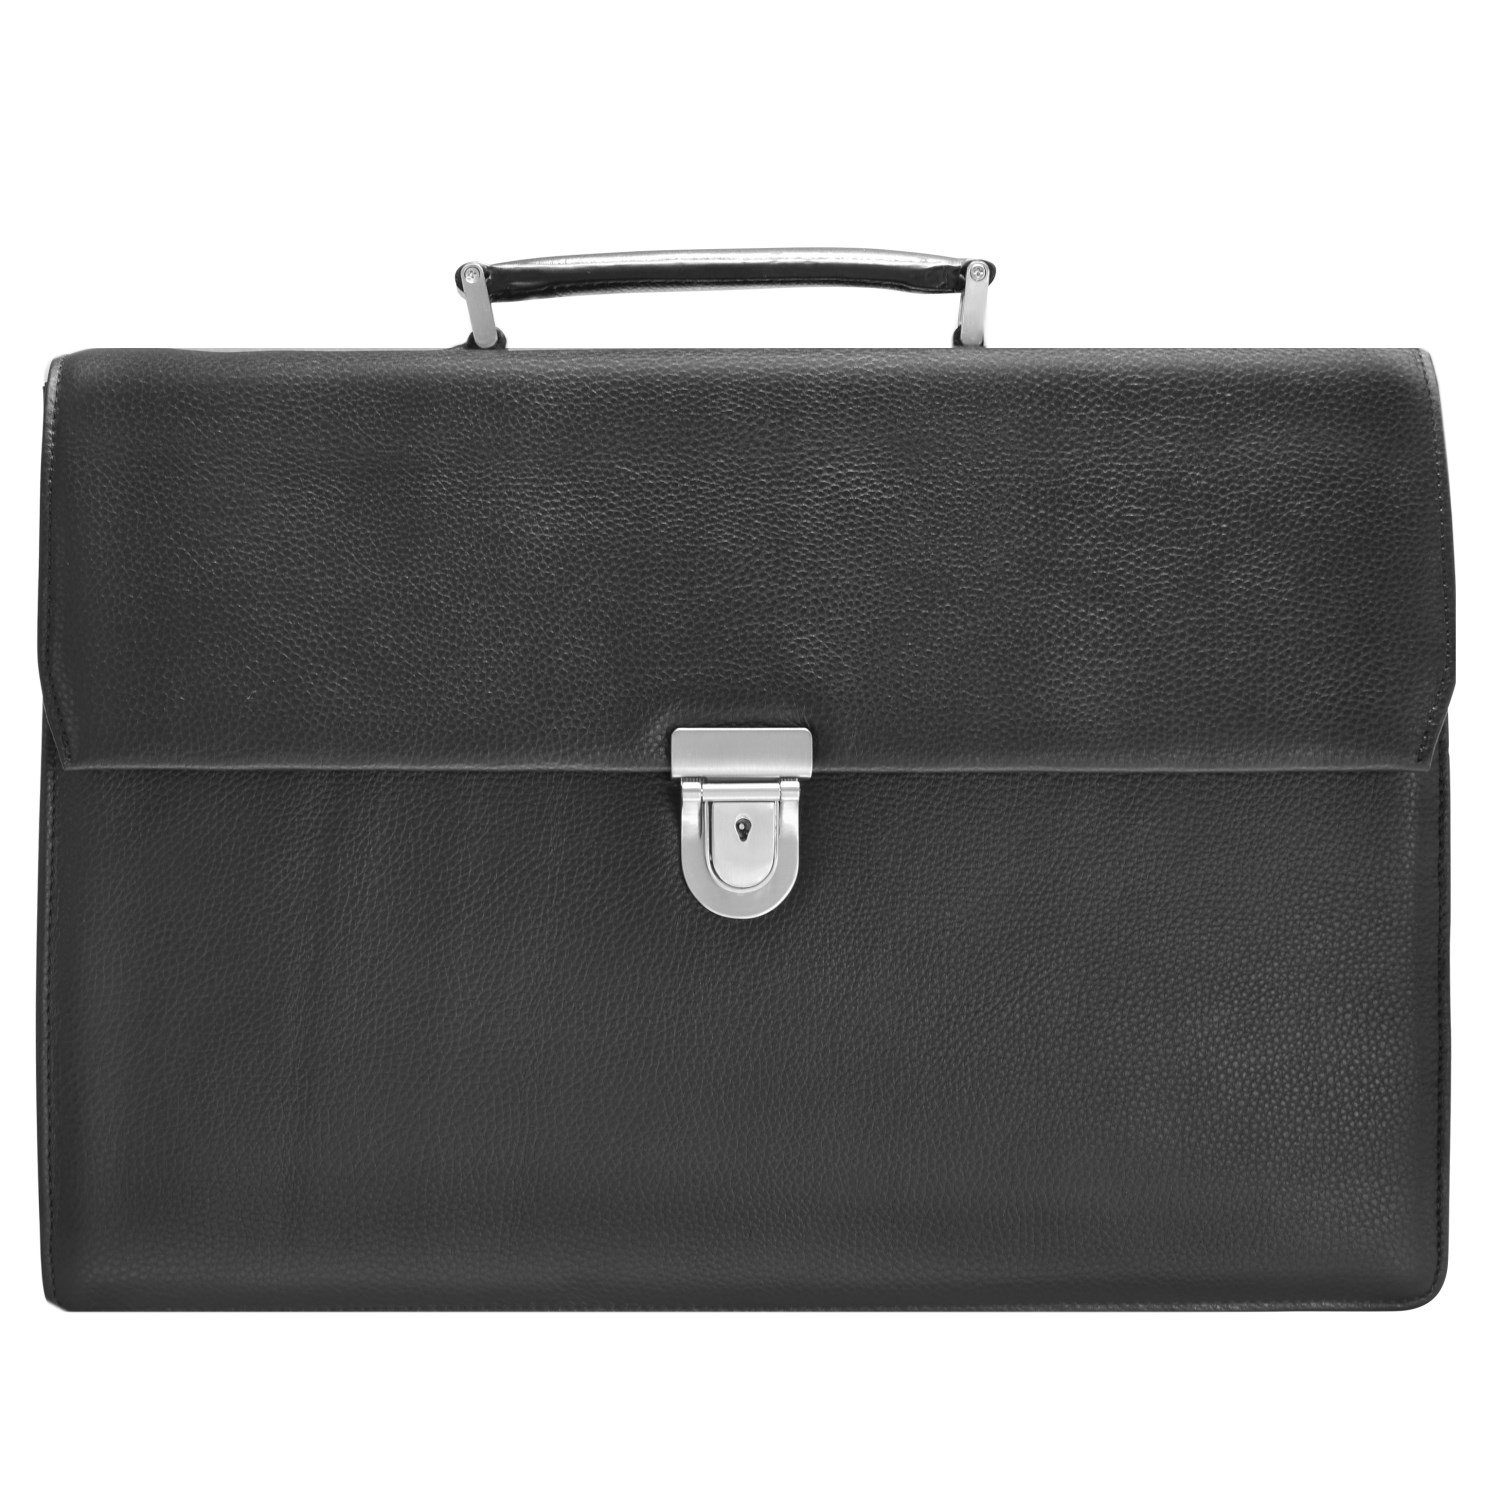 d & n Business Line Aktentasche Laptopfach